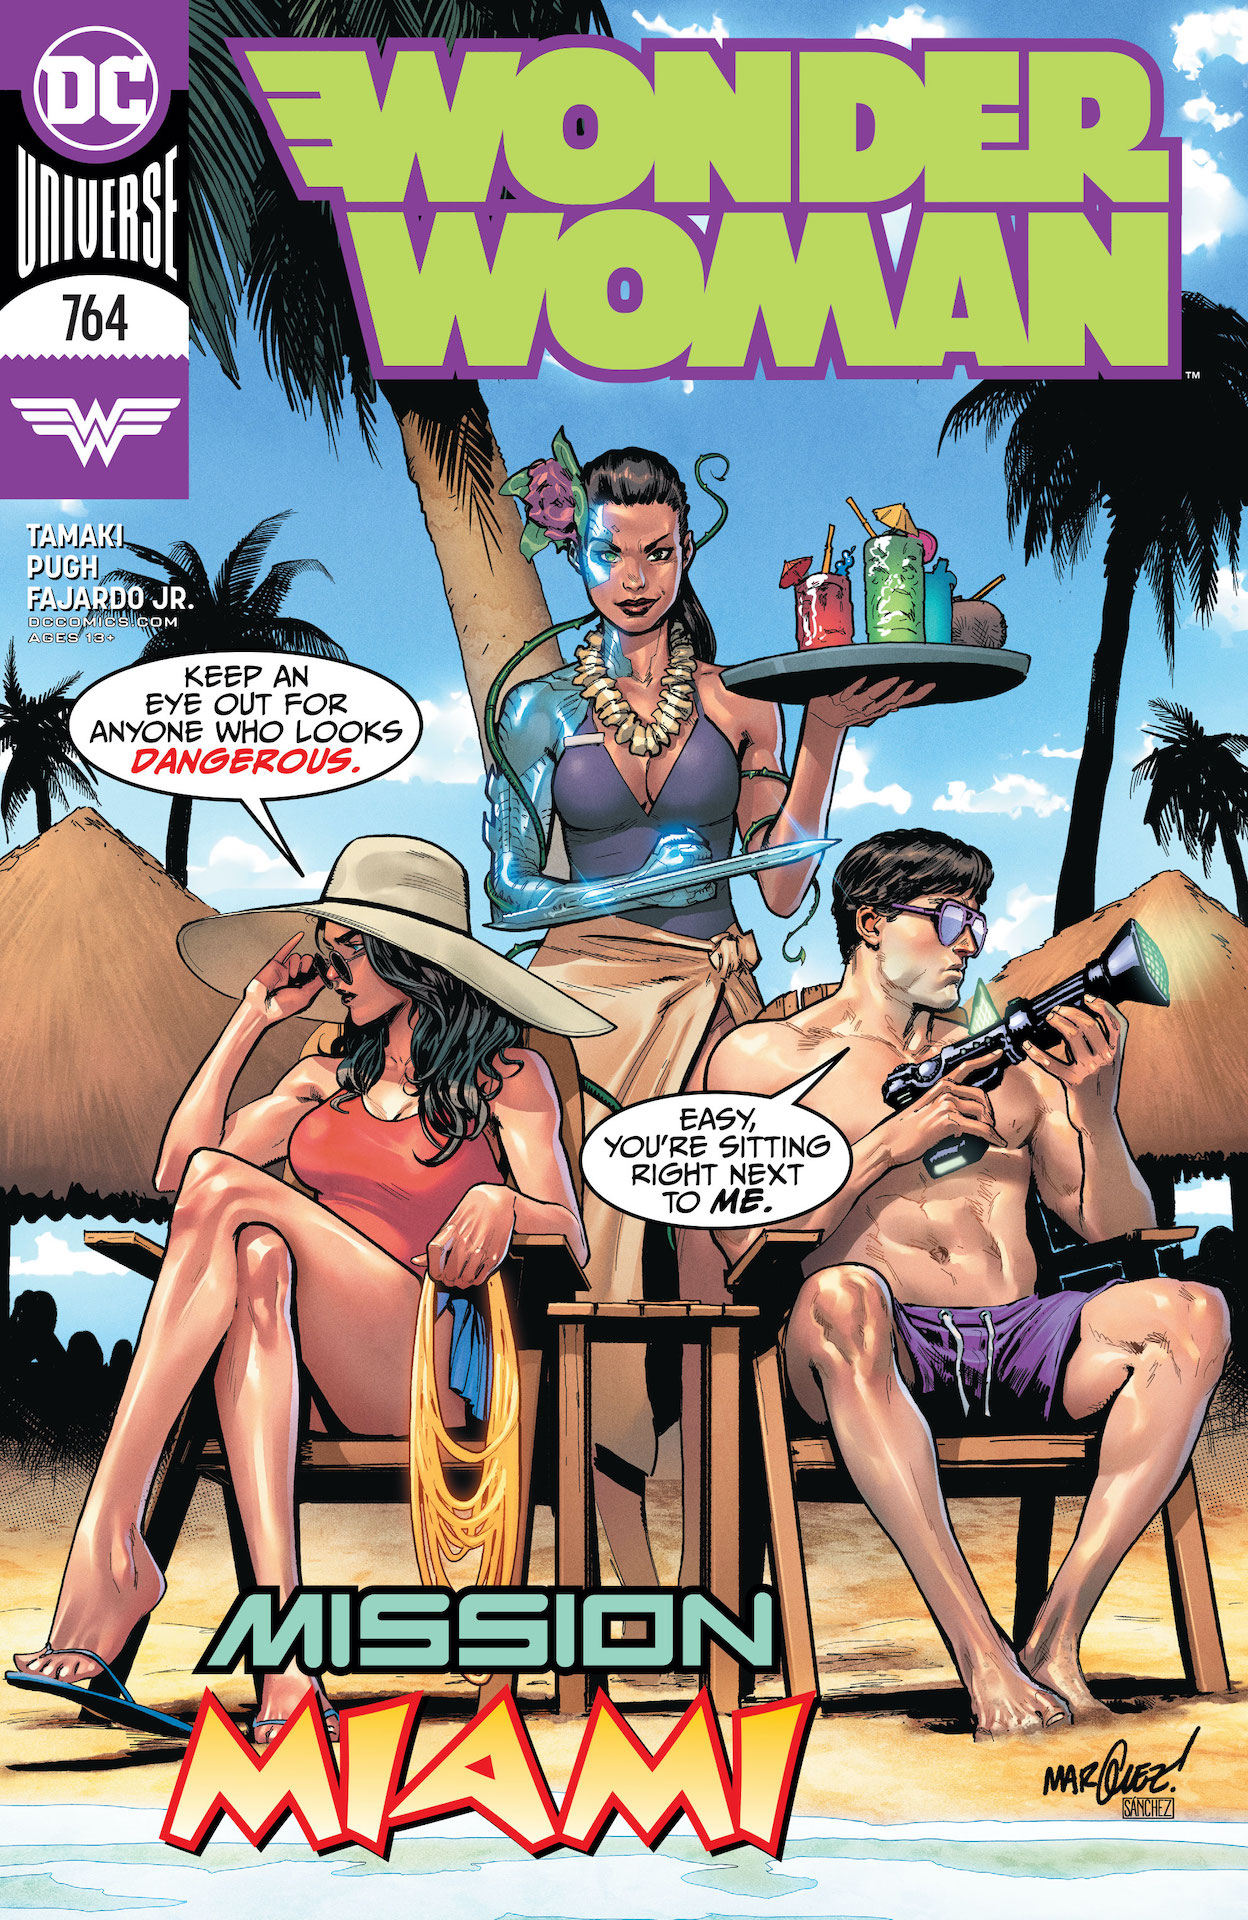 Wonder Woman #764 cover